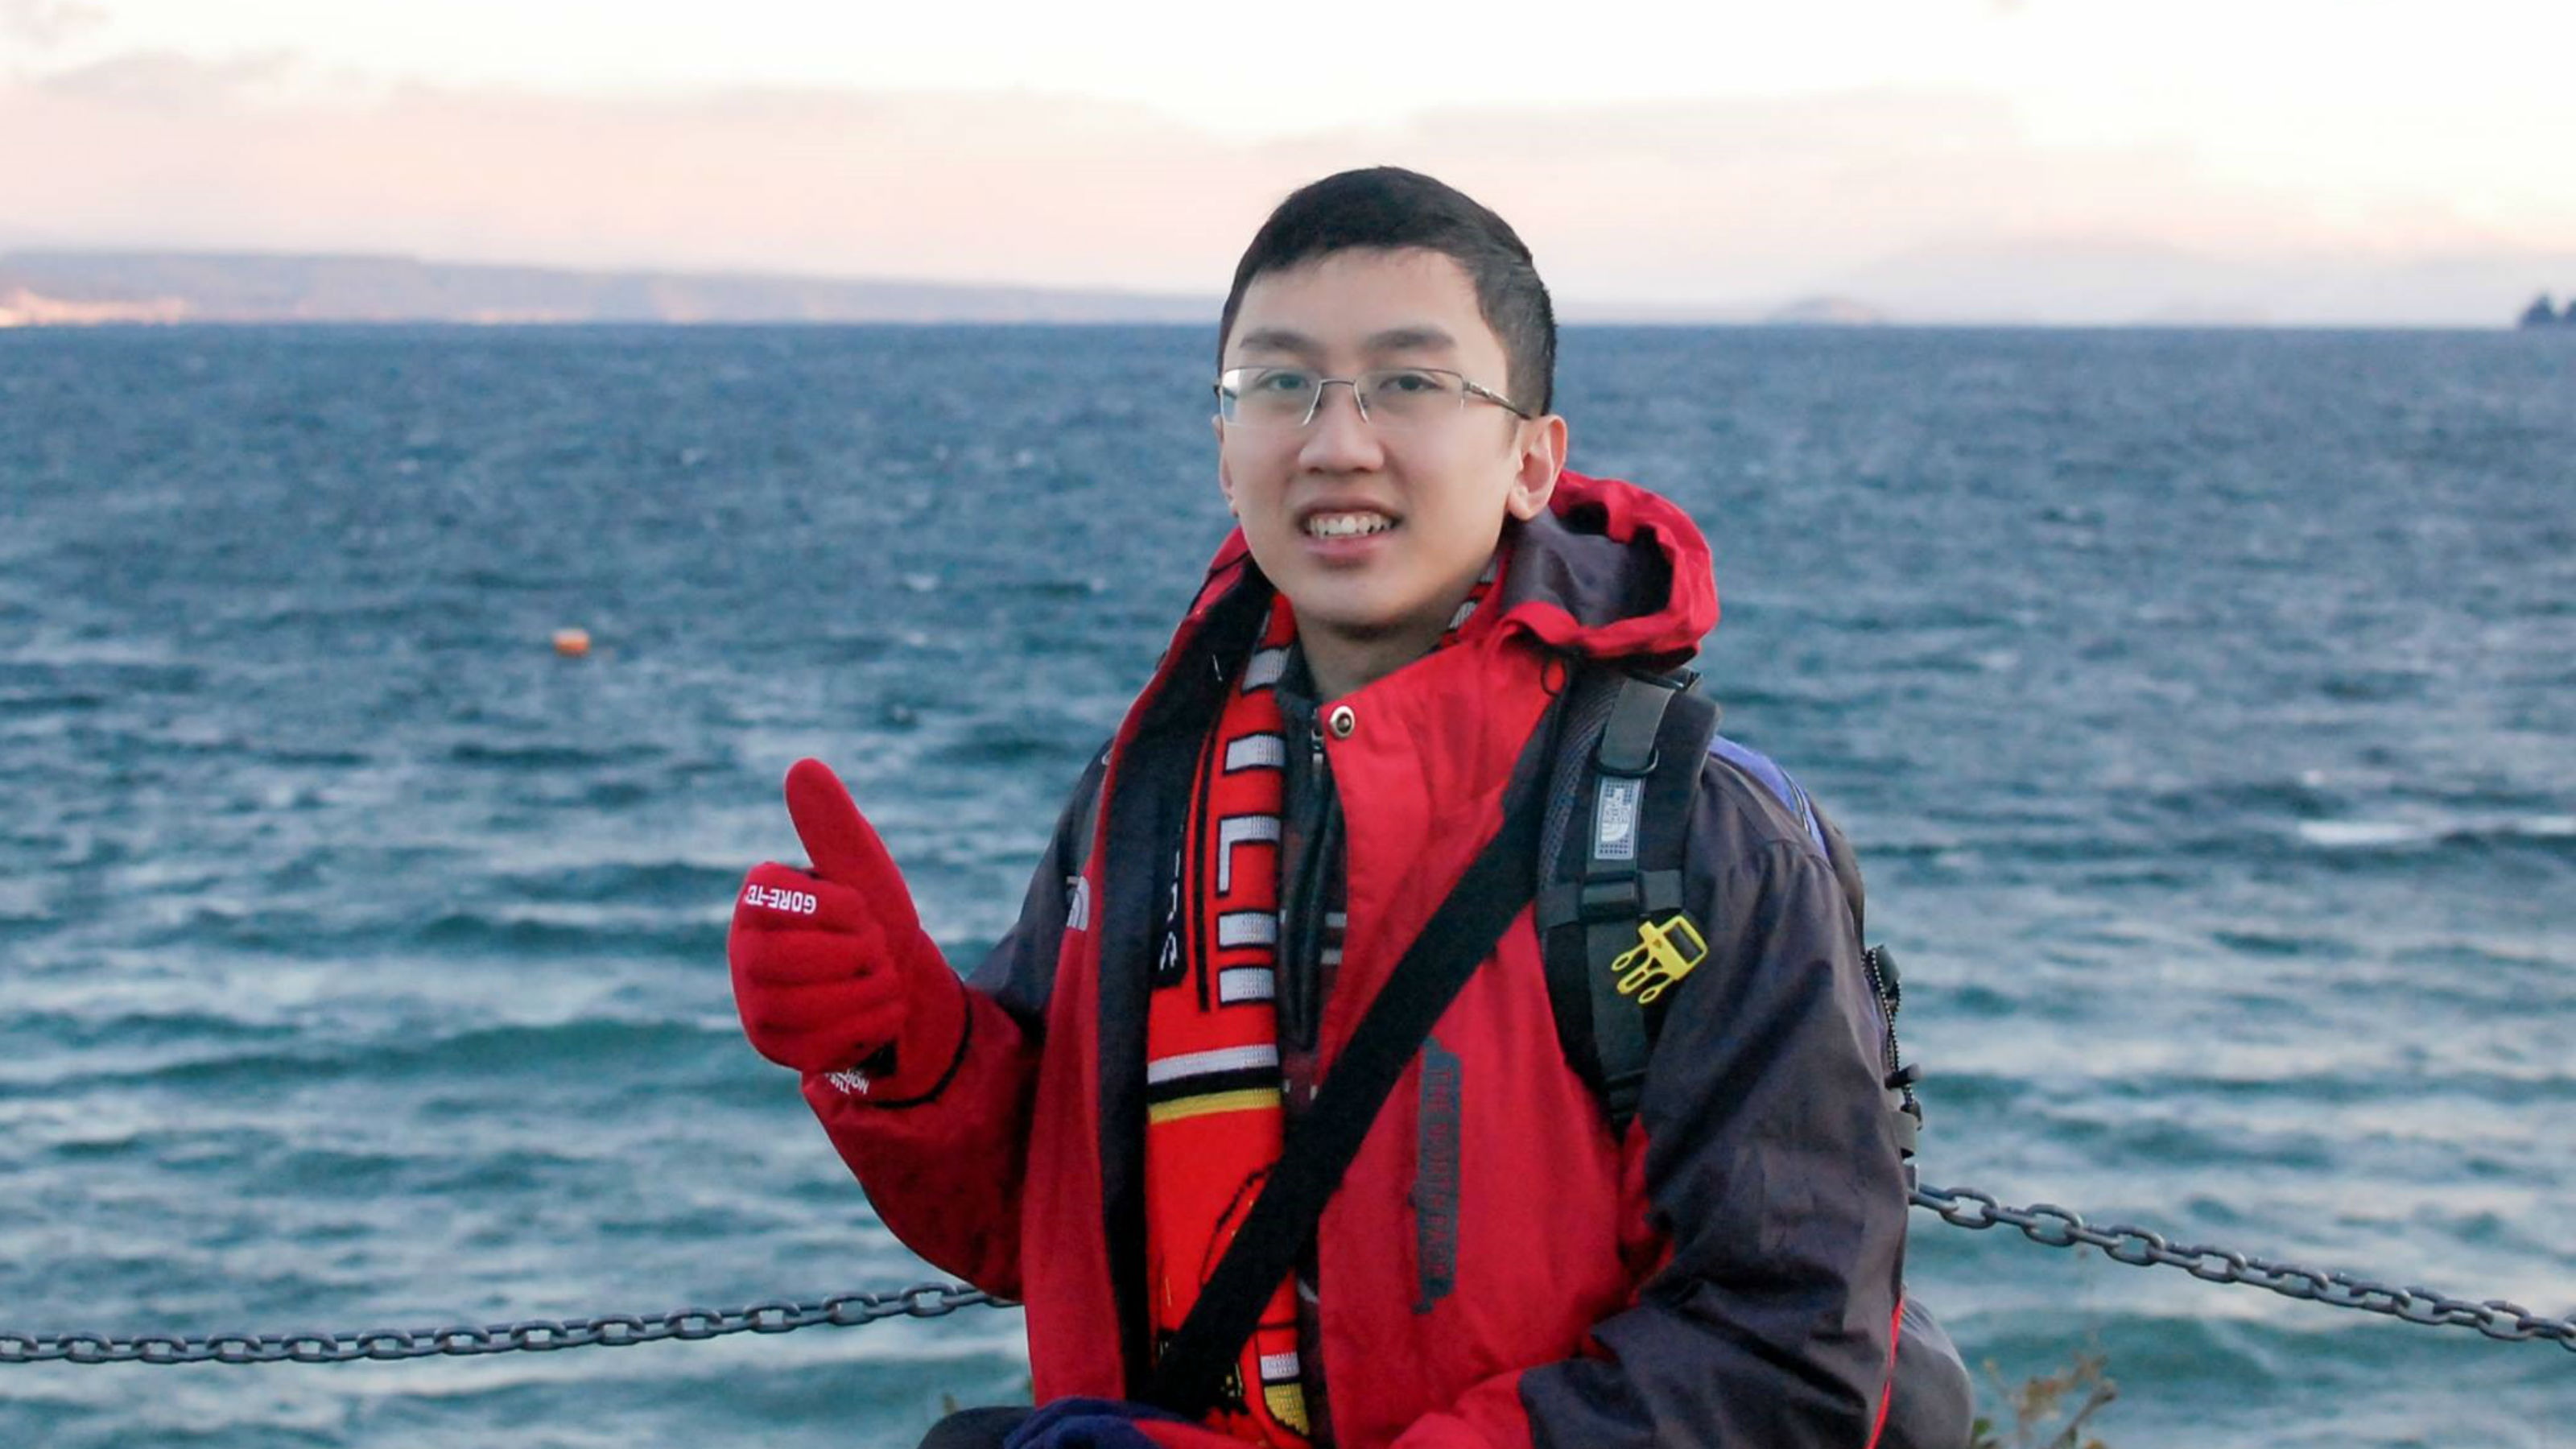 Quan Trong Nguyen in a big red jacket gives a gloved thumbs-up before a body of blue water and coastline in the offing.